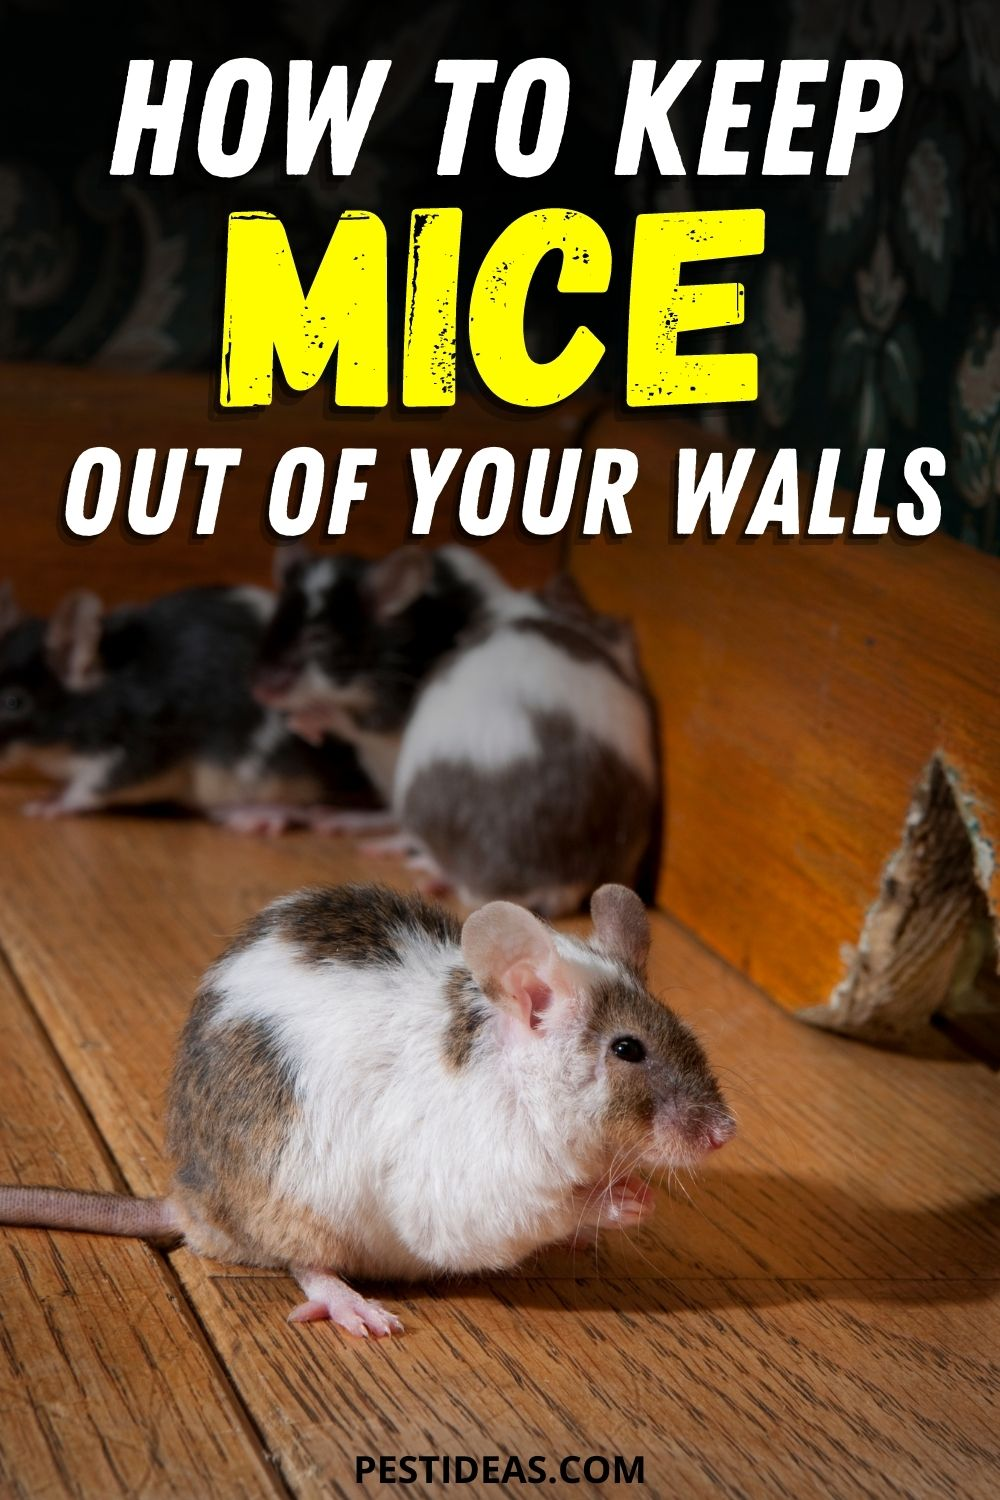 How to keep mice out of your walls